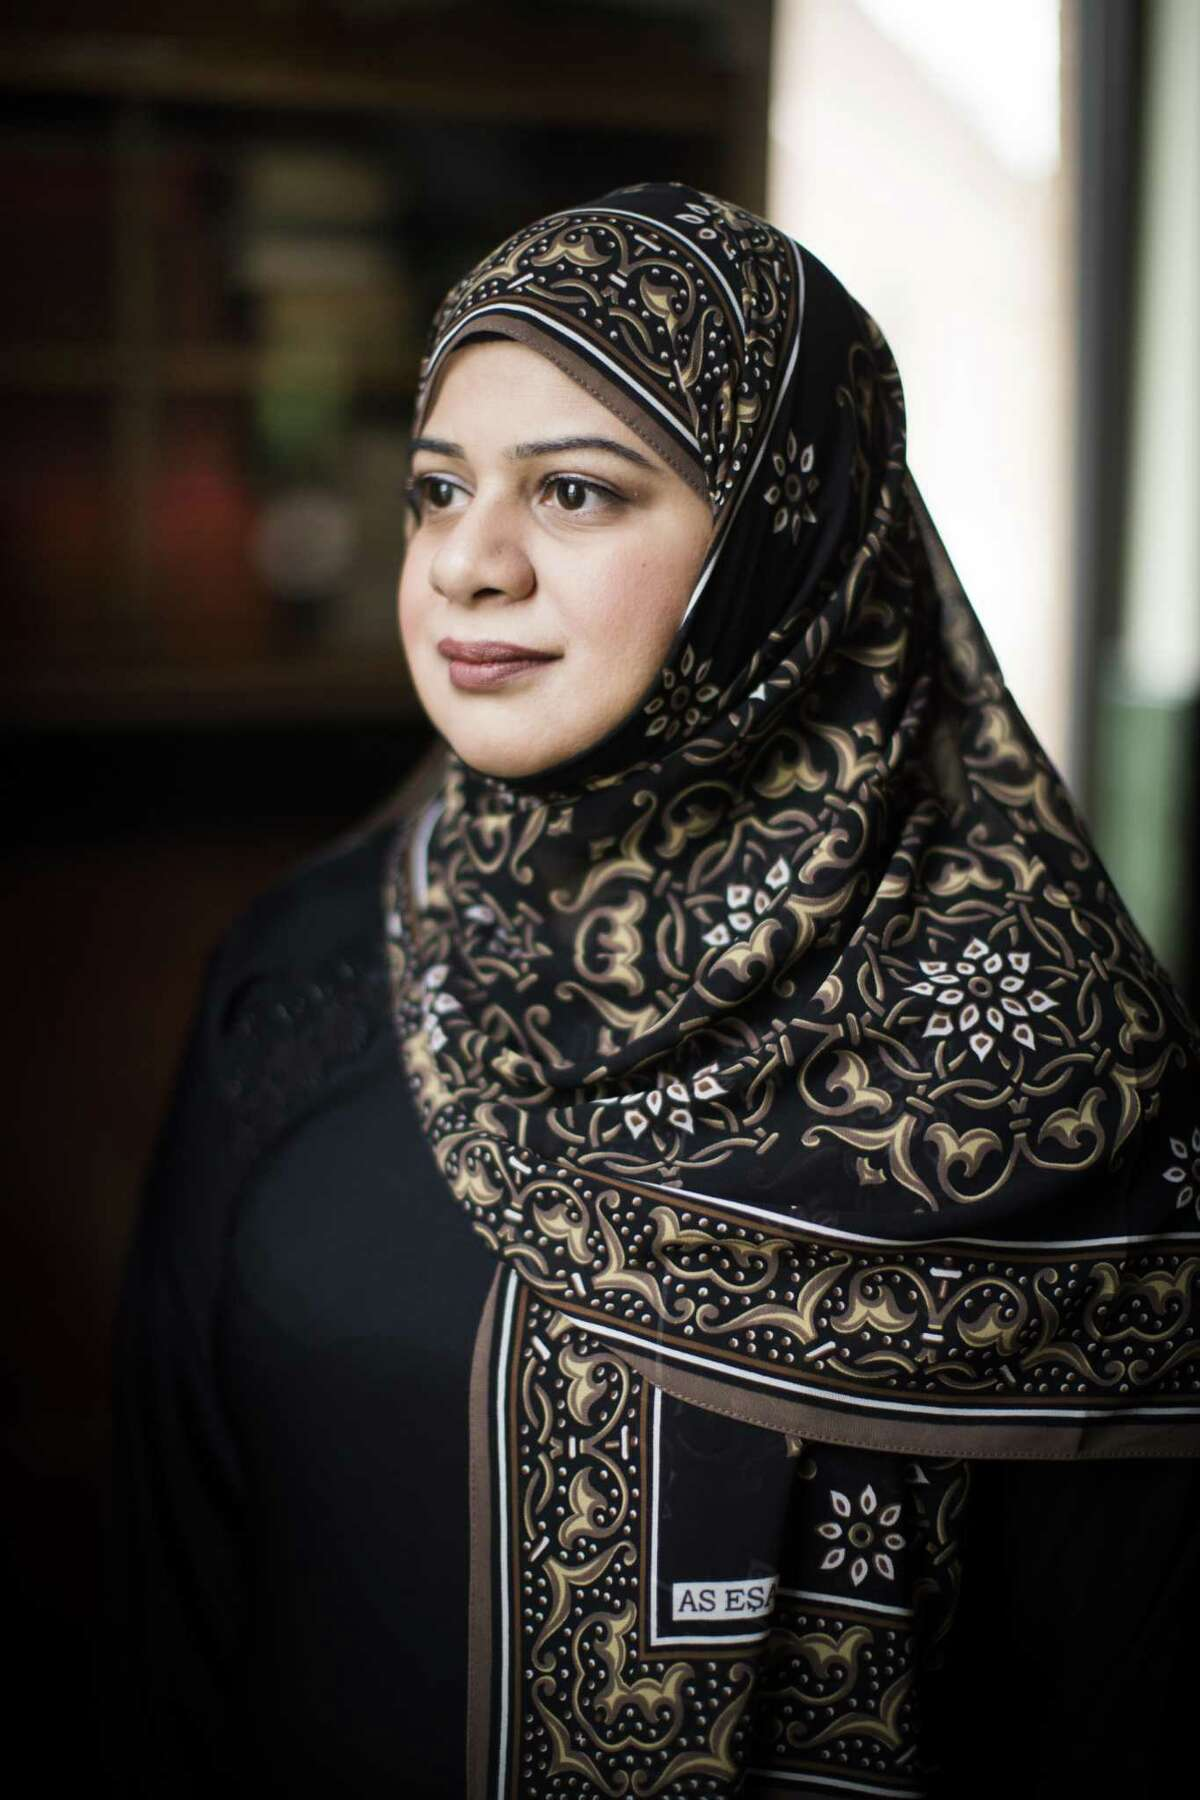 Sarah Alikhan, 42, who has a long history of civic work and leadership is running for for Shura, the governing body of the Islamic Society of Greater Houston, Thursday, Nov. 29, 2018, in Sugar Land. Alikhan would be the first woman to do so.